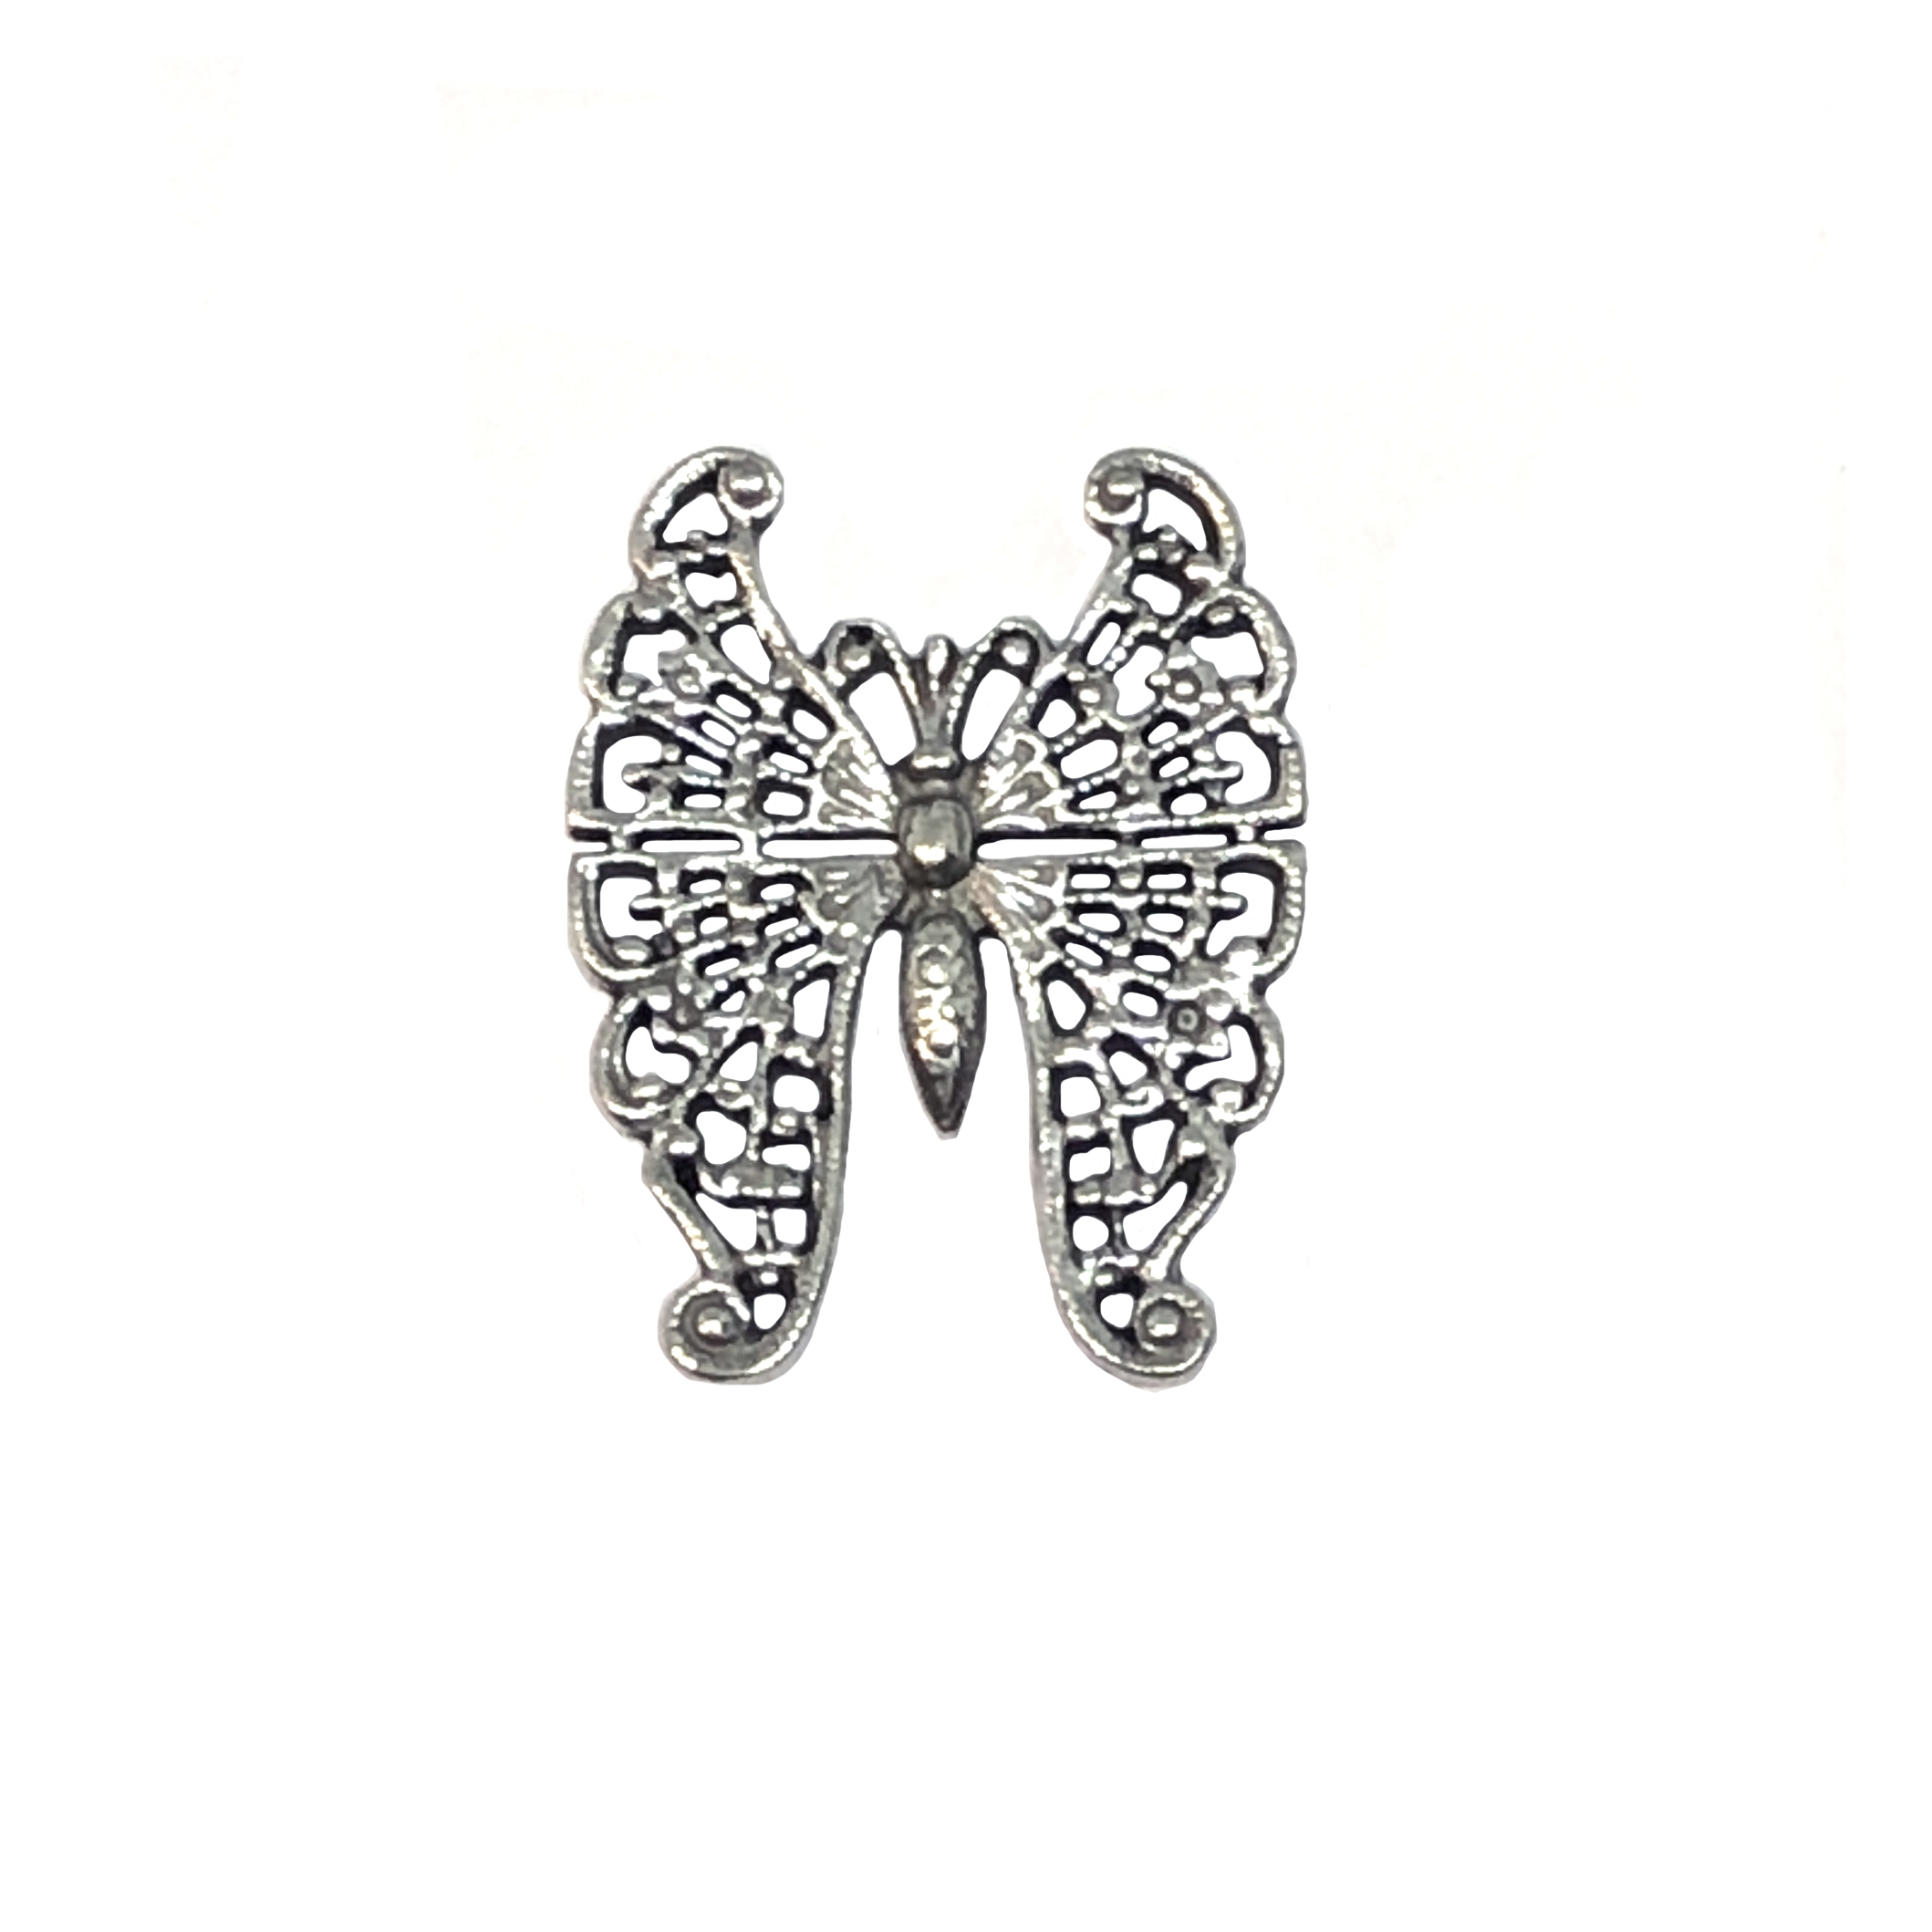 old silver pewter, French butterfly, filigree butterfly, 01001, lead free pewter, B'sue by 1928, 1928 Company, designer jewelry findings, vintage jewelry parts, 1928 Jewelry, plated pewter, filigree, B'sue Boutiques, vintage French findings,US made